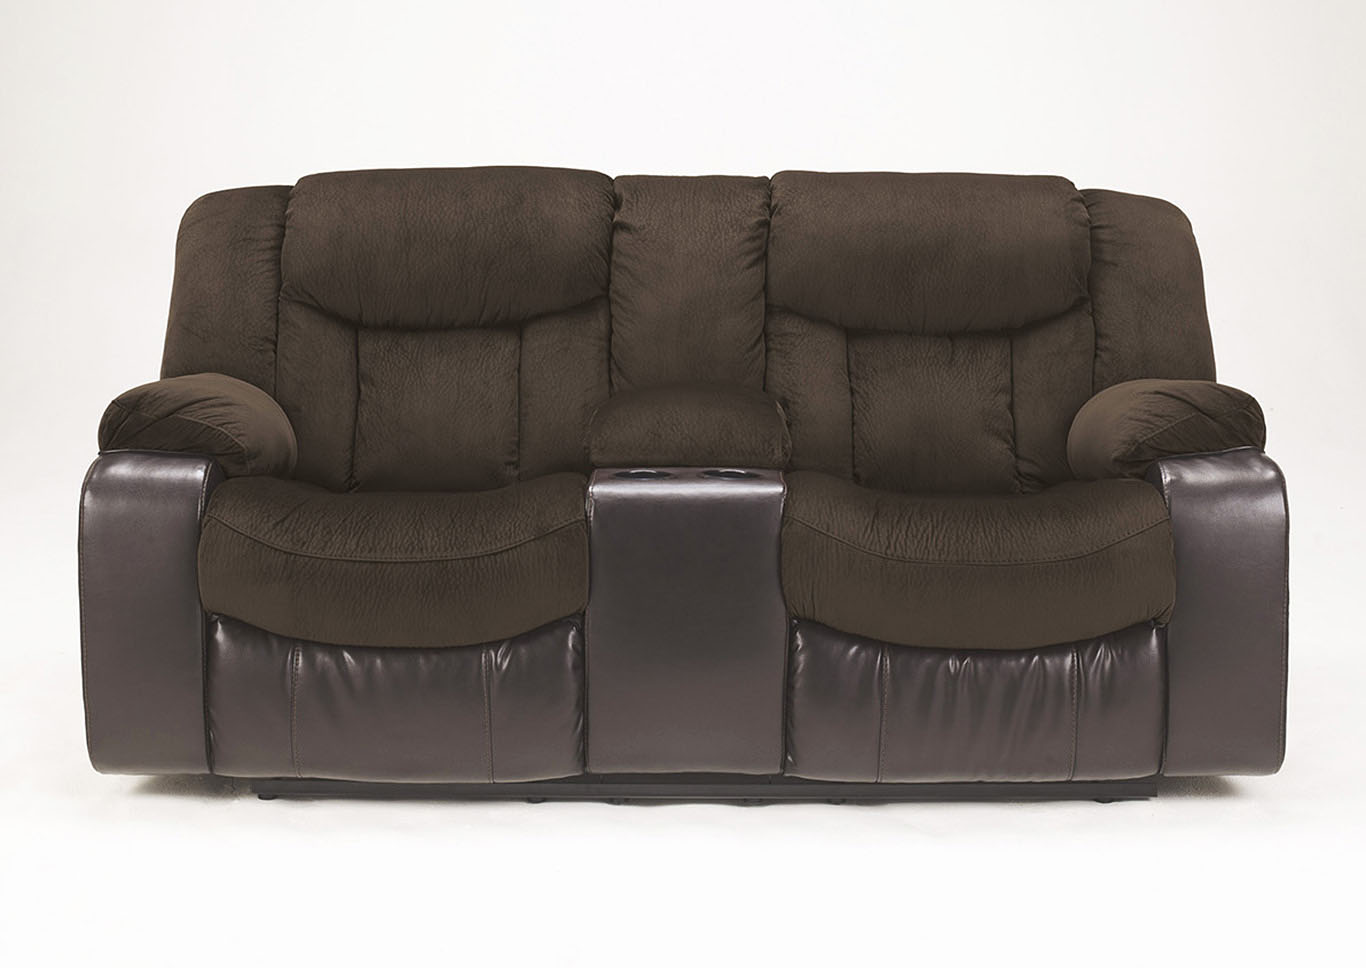 Tafton Java Double Reclining Loveseat,Signature Design By Ashley